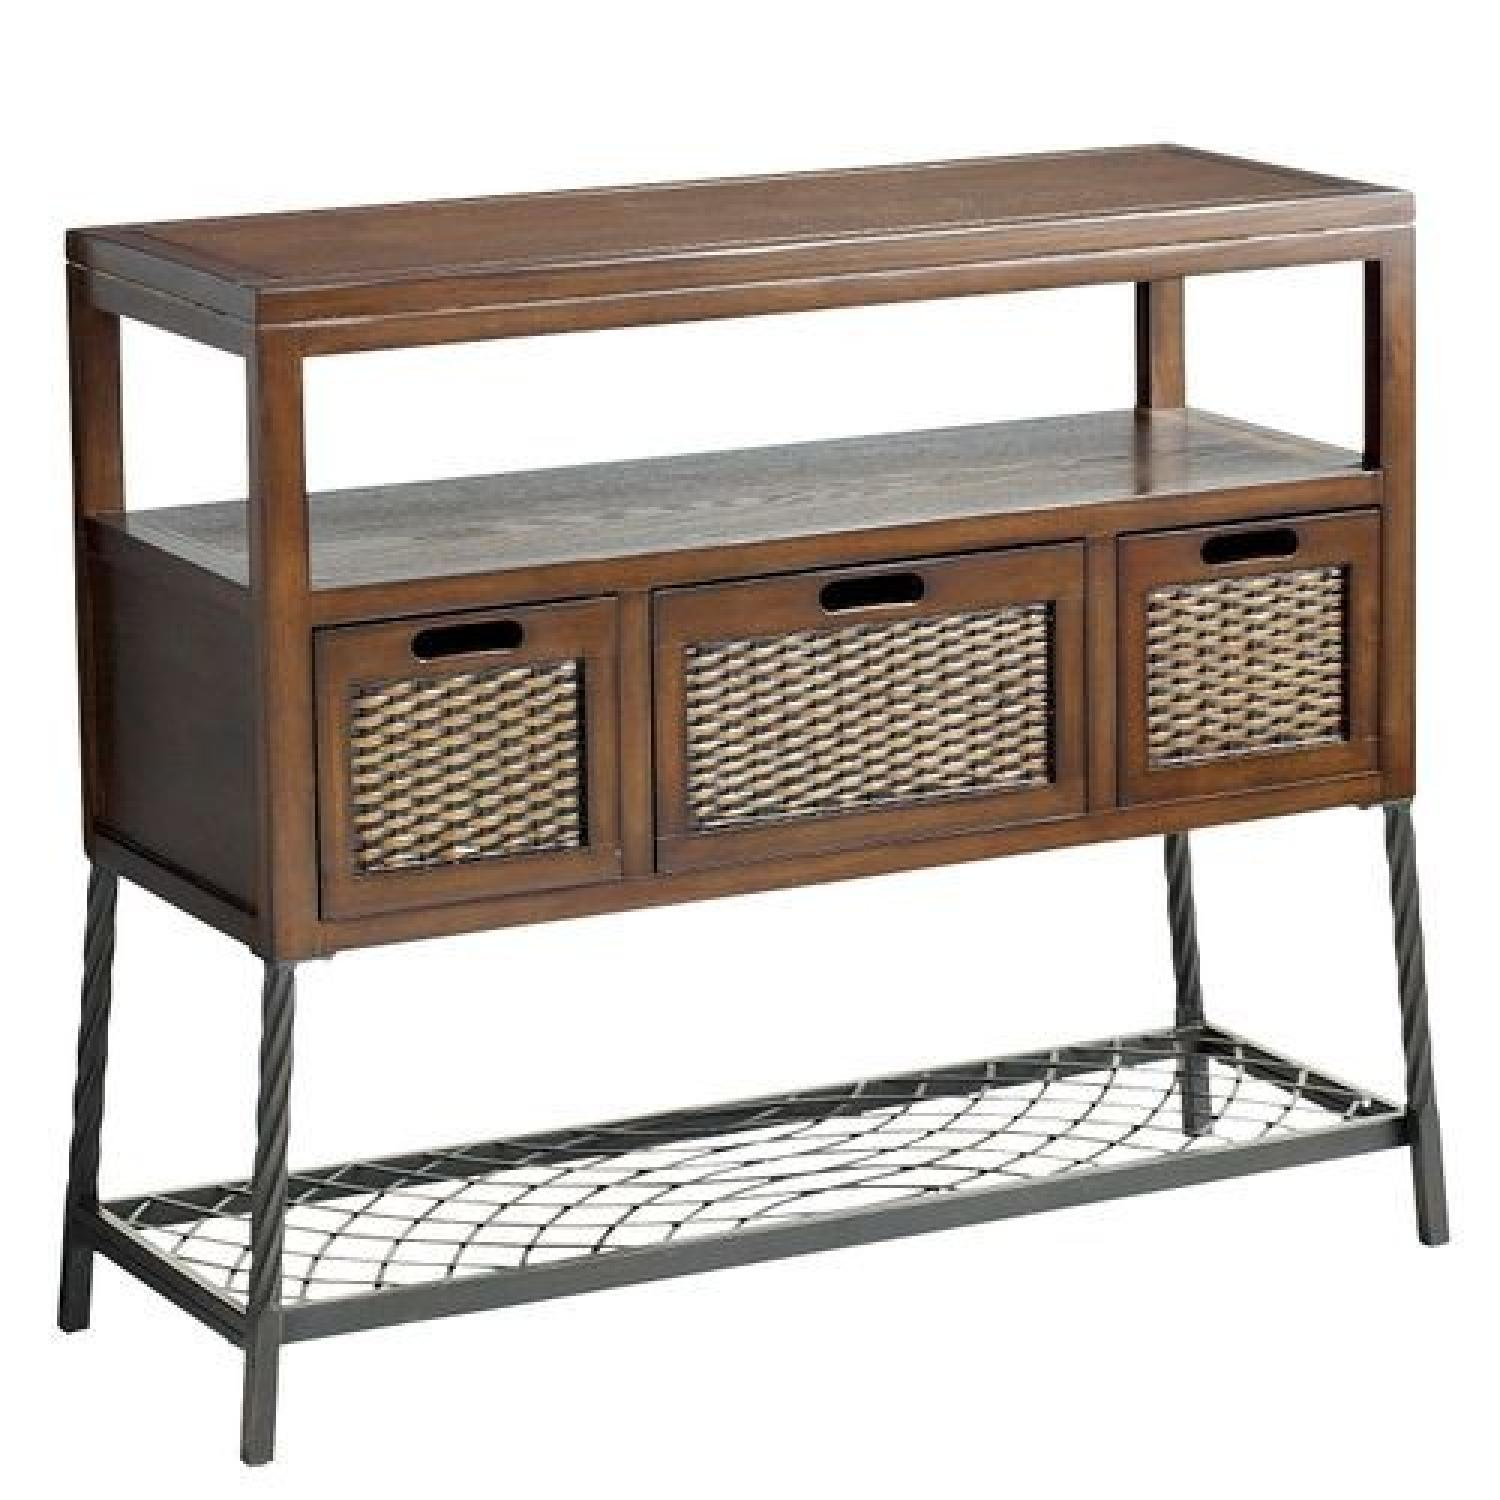 Pier 1 Logan Collection Console Table